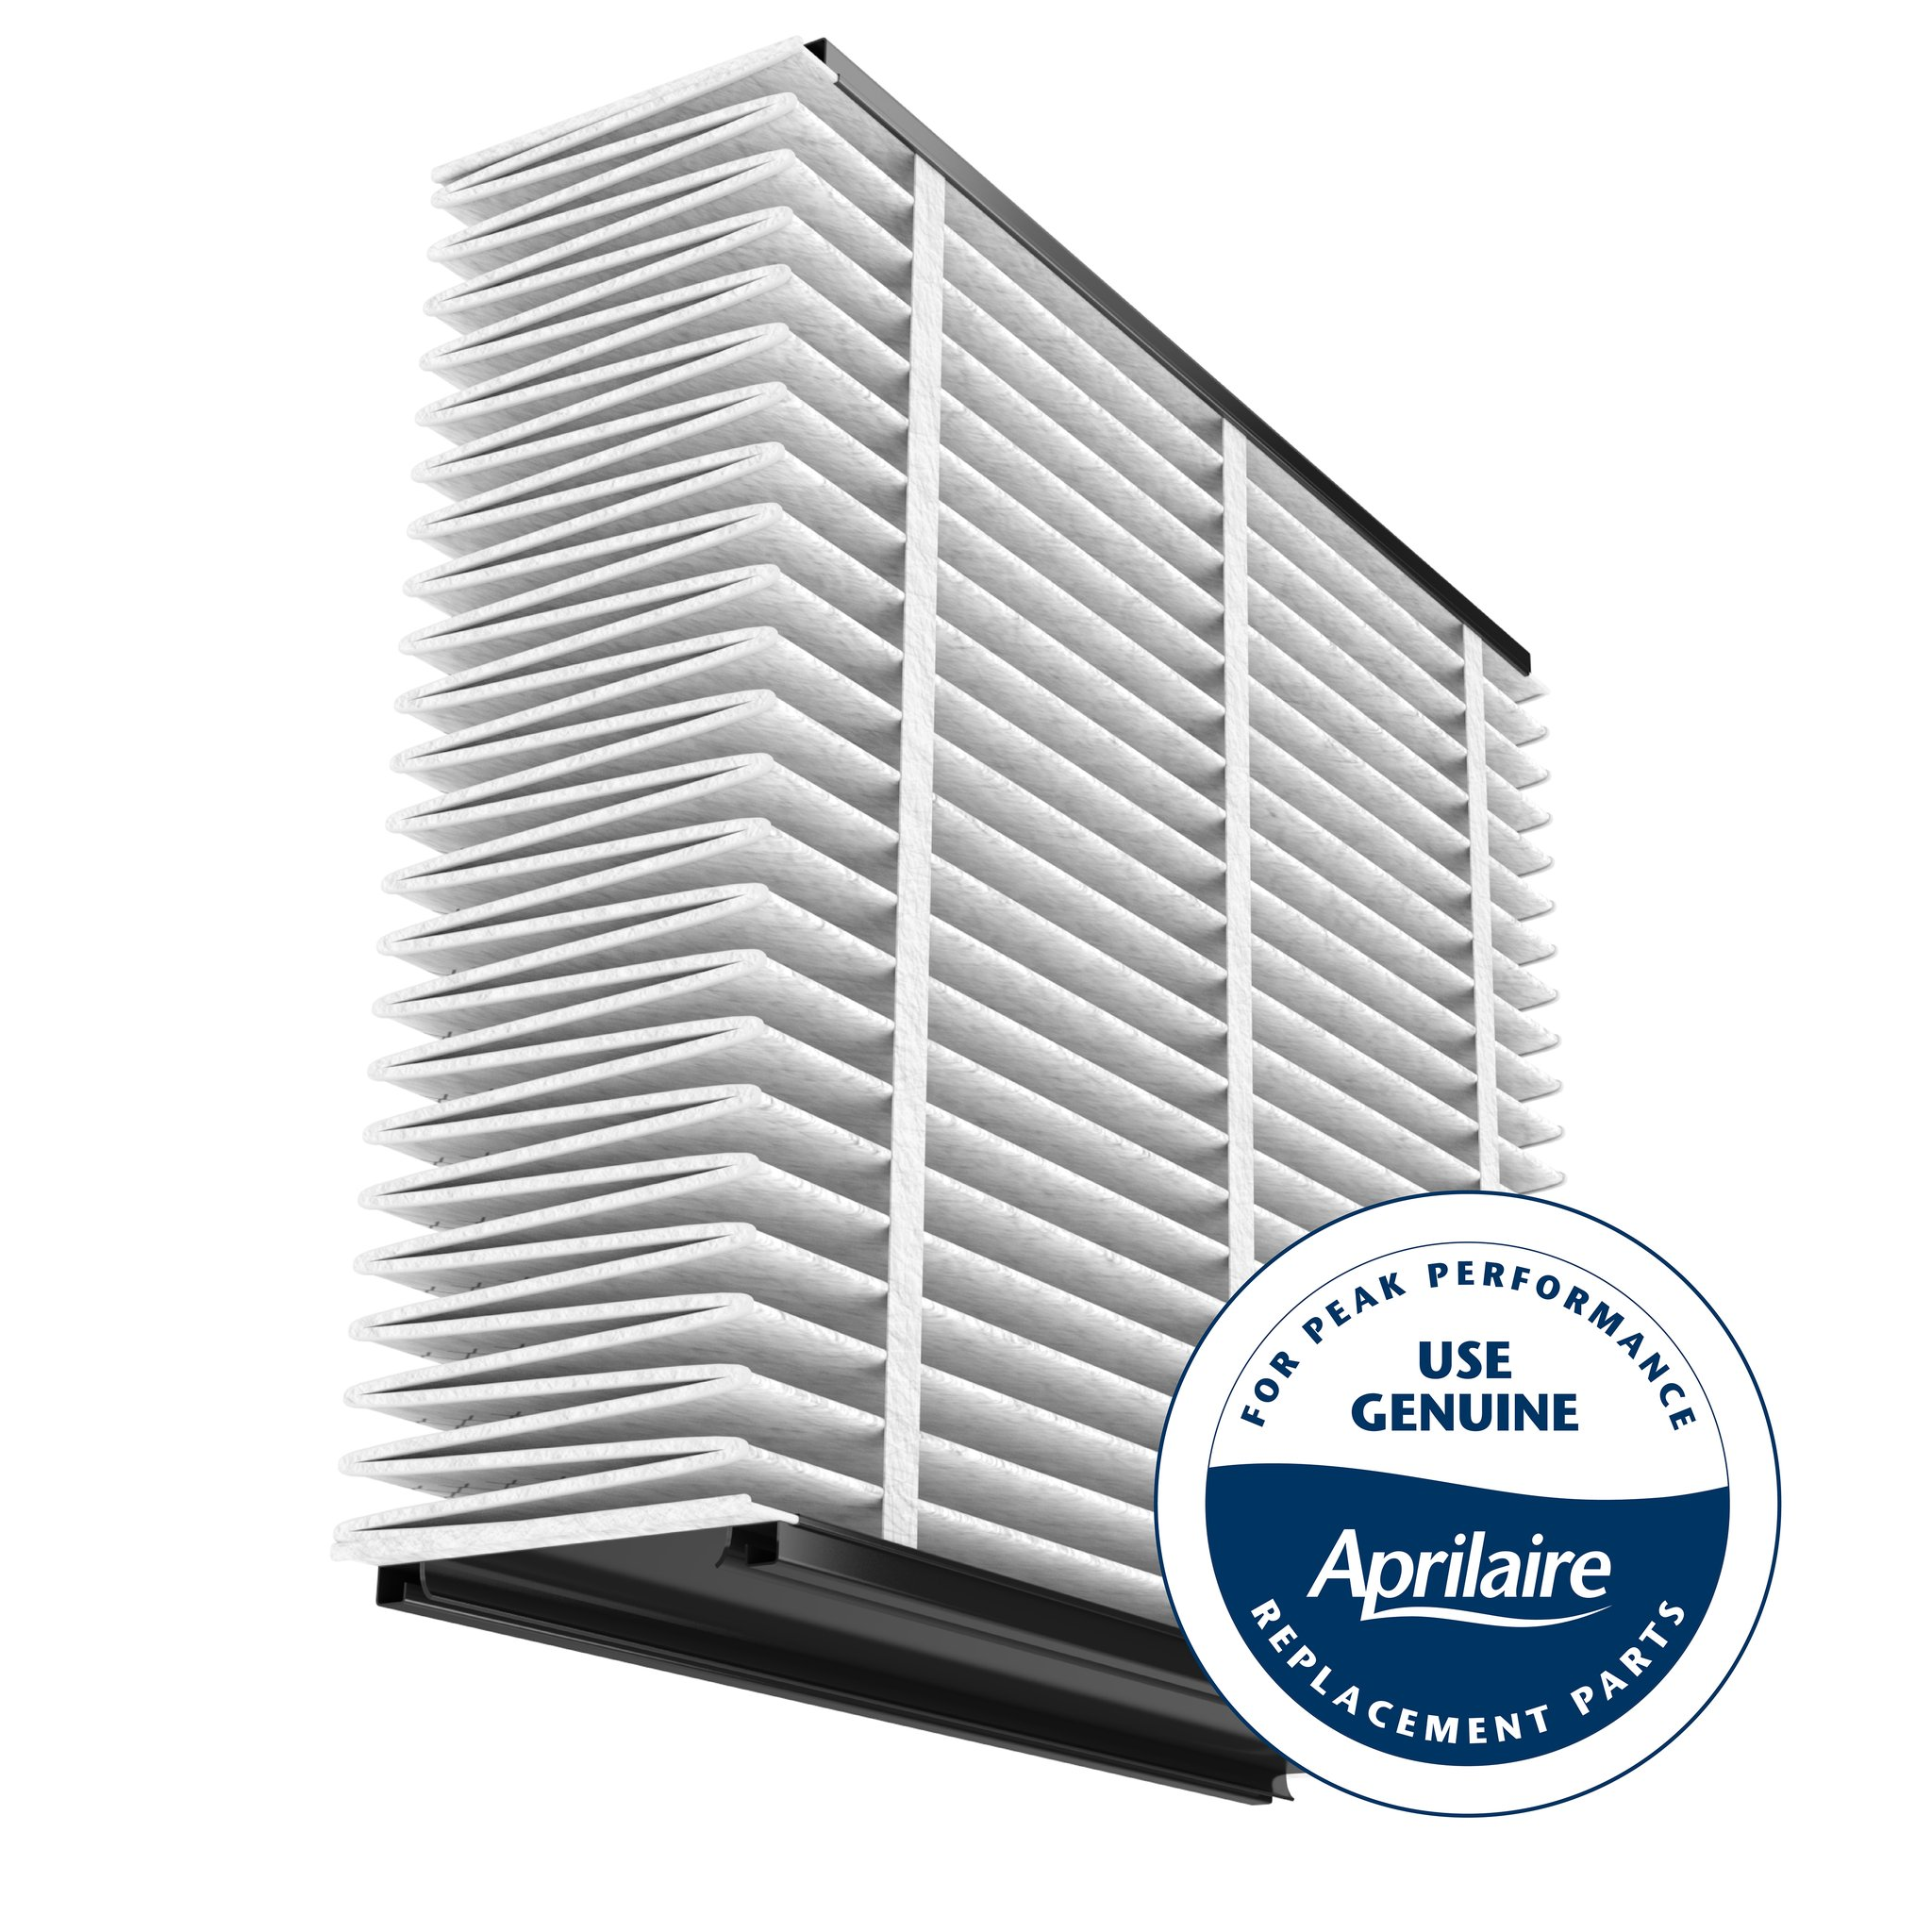 Clean Air Filter >> Aprilaire 410 Clean Air Filter For Aprilaire Whole Home Air Purifiers Merv 11 For Dust